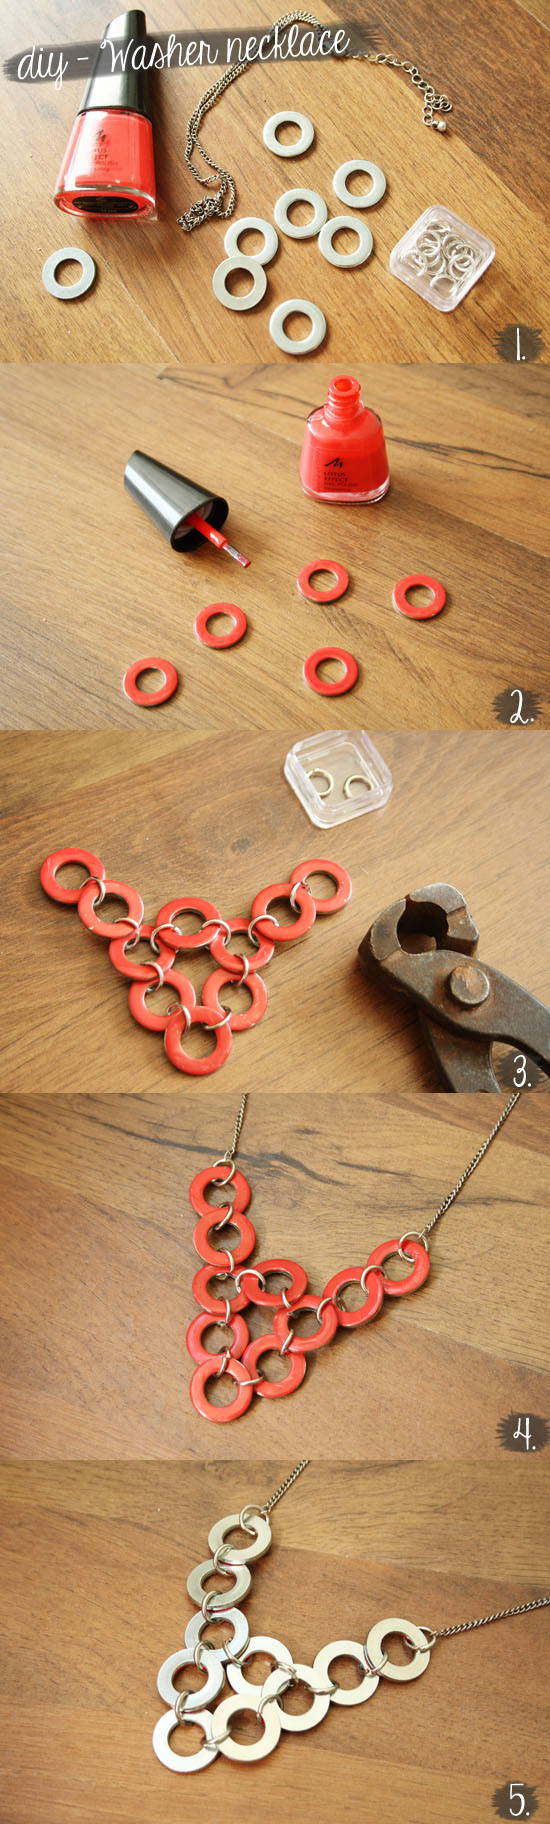 DIY – Washer necklace @ By Wilma